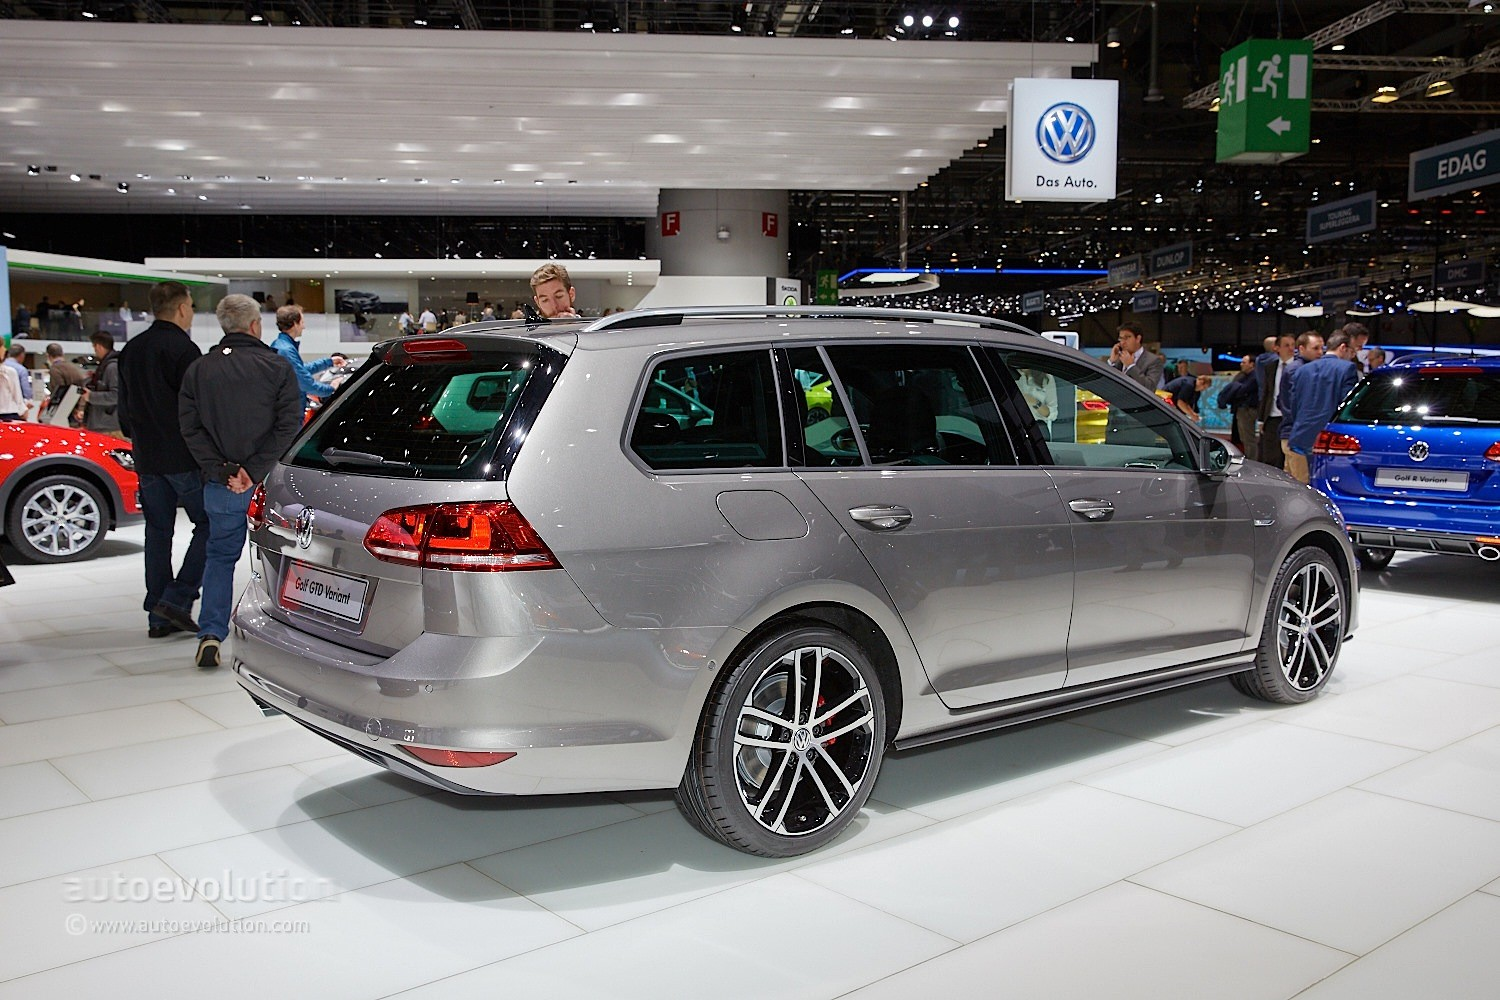 184 hp volkswagen golf gtd variant brings efficiency and space to geneva debut autoevolution. Black Bedroom Furniture Sets. Home Design Ideas